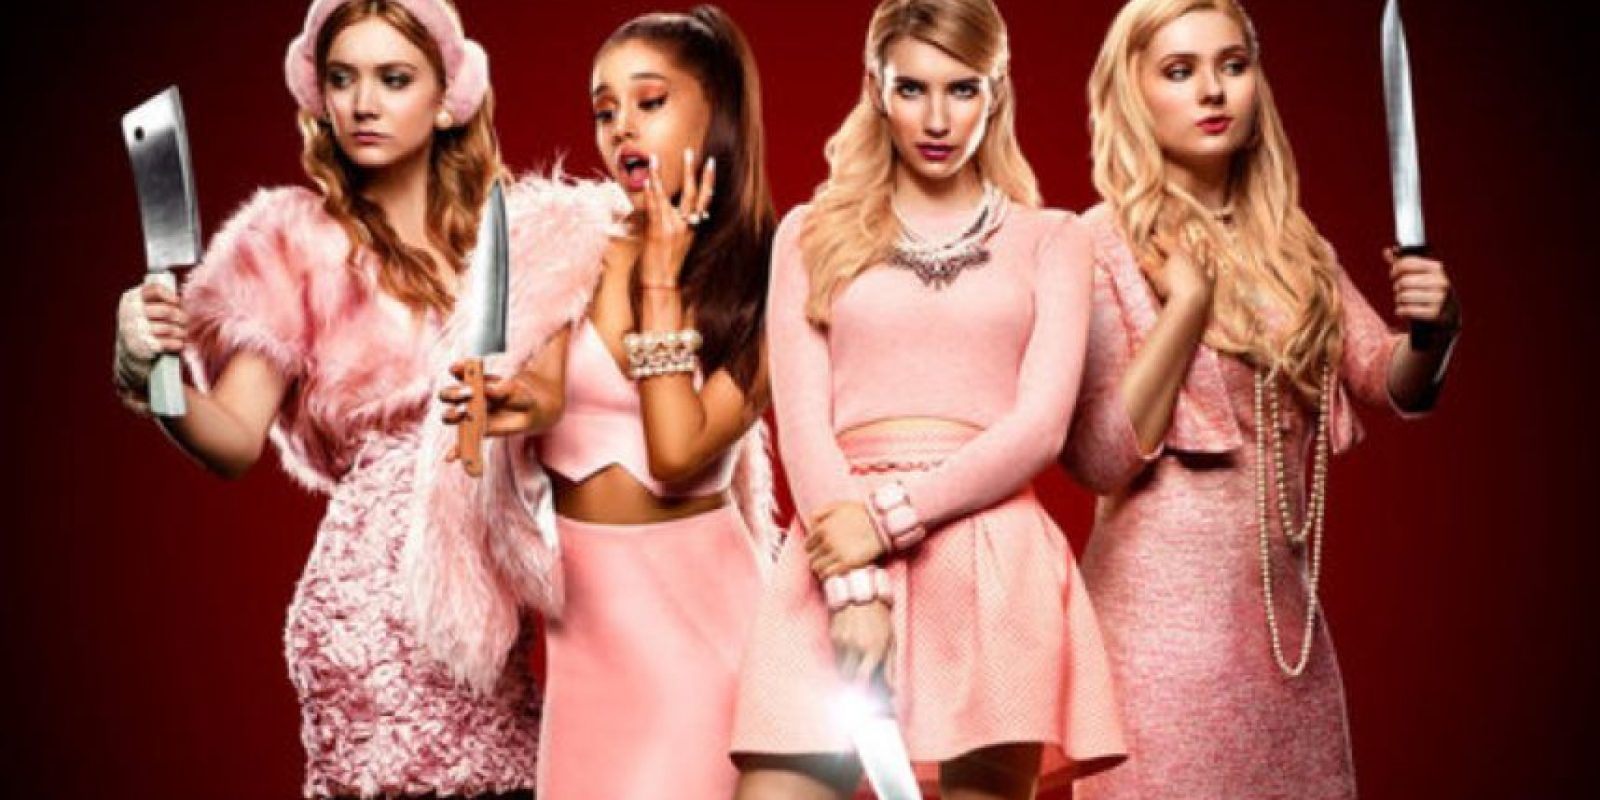 """Scream Queens"" muestra los brutales asesinatos dentro de una hermandad universitaria de chicas. Foto: vía FOX"